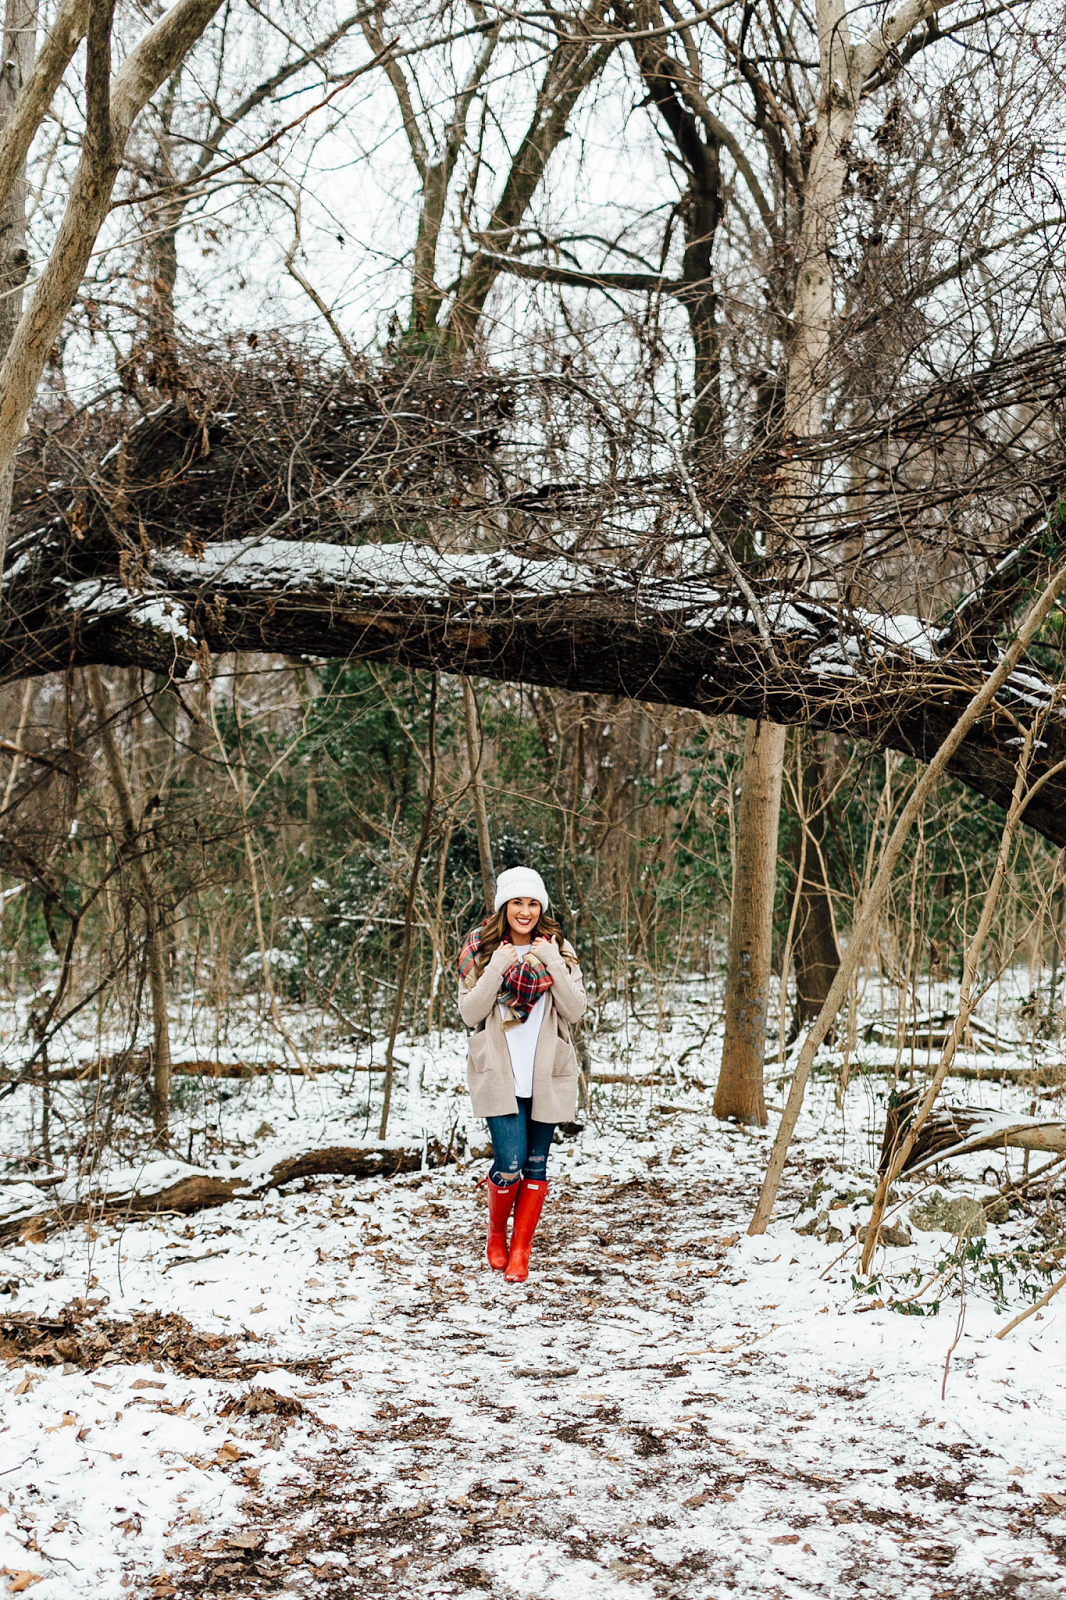 Ways to survive the winter: take a walk outside